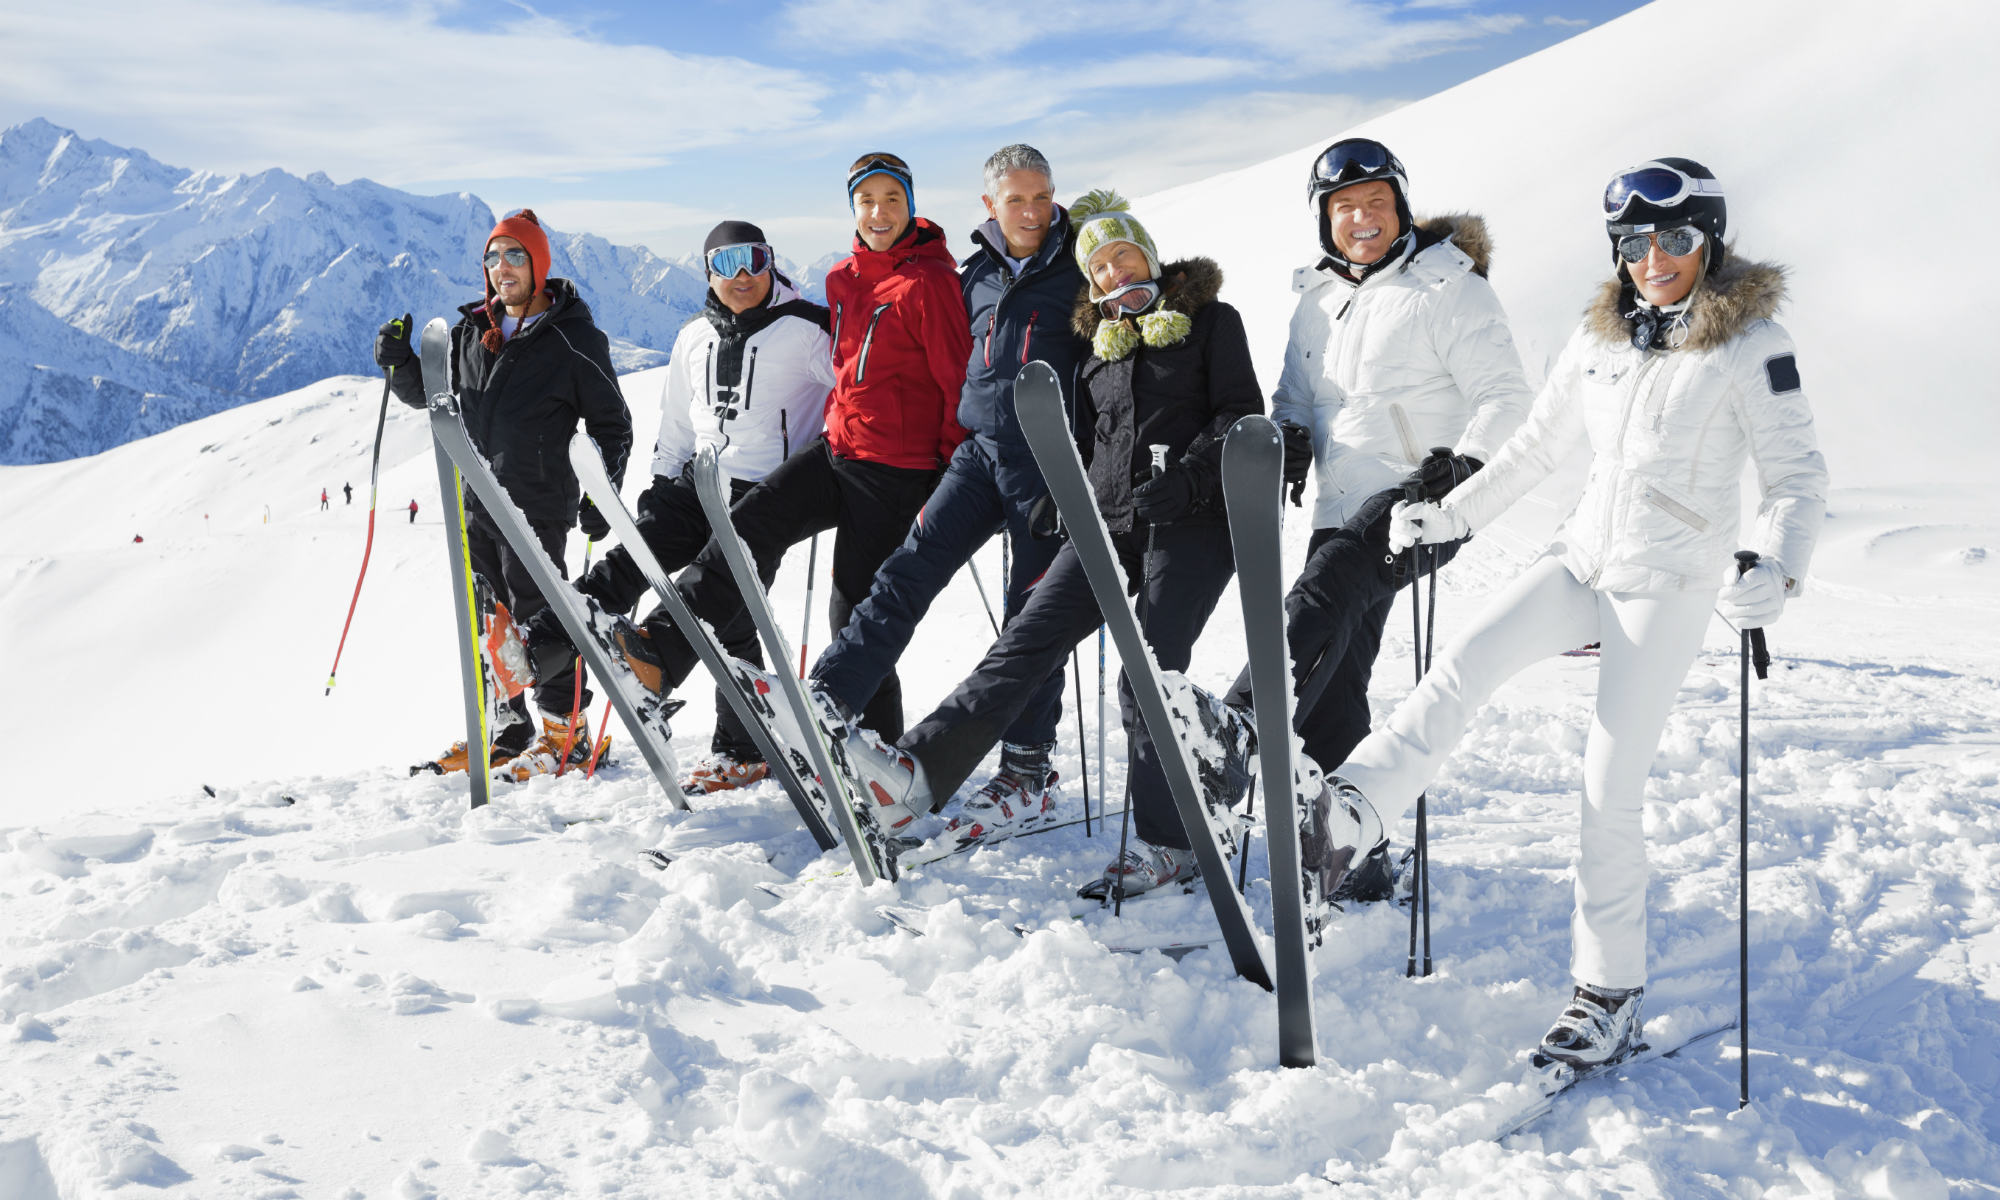 Skiers presenting their rented equipment and enjoying a sunny slope.